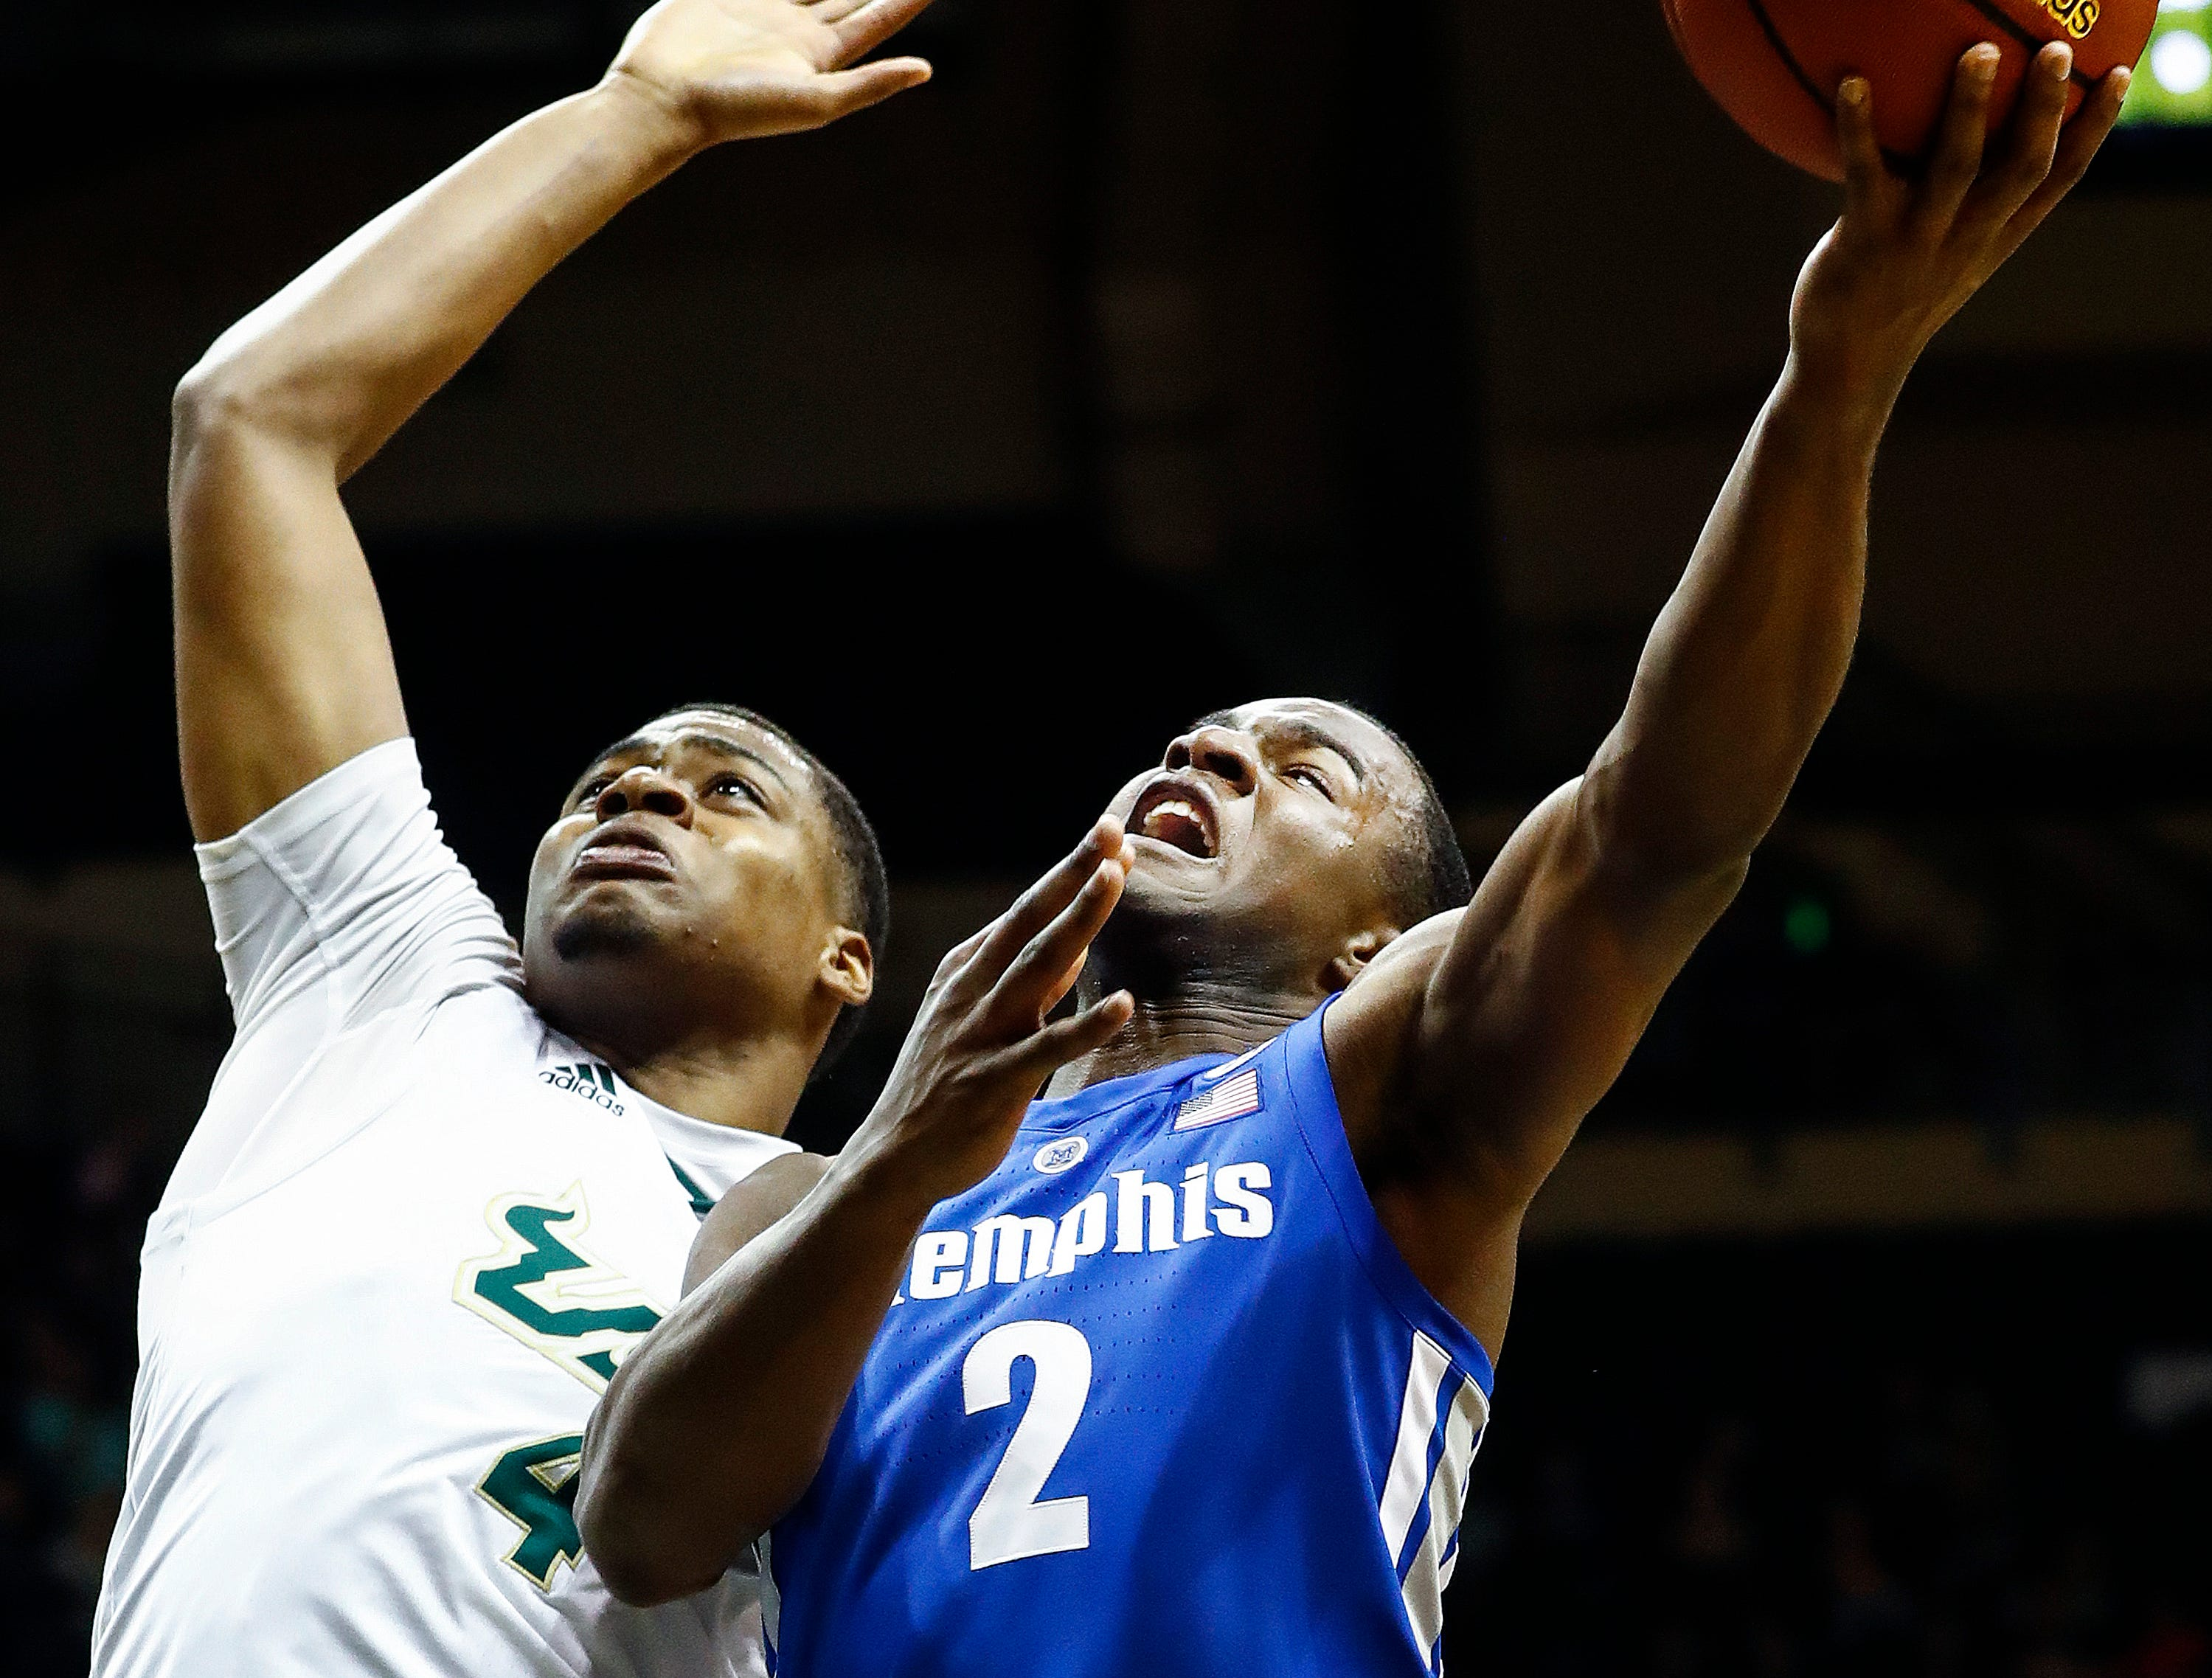 Memphis guard Alex Lomax (right) drives to the basket against USF defender Michael Durr (left) during action in Tampa, Saturday, February 2, 2019.